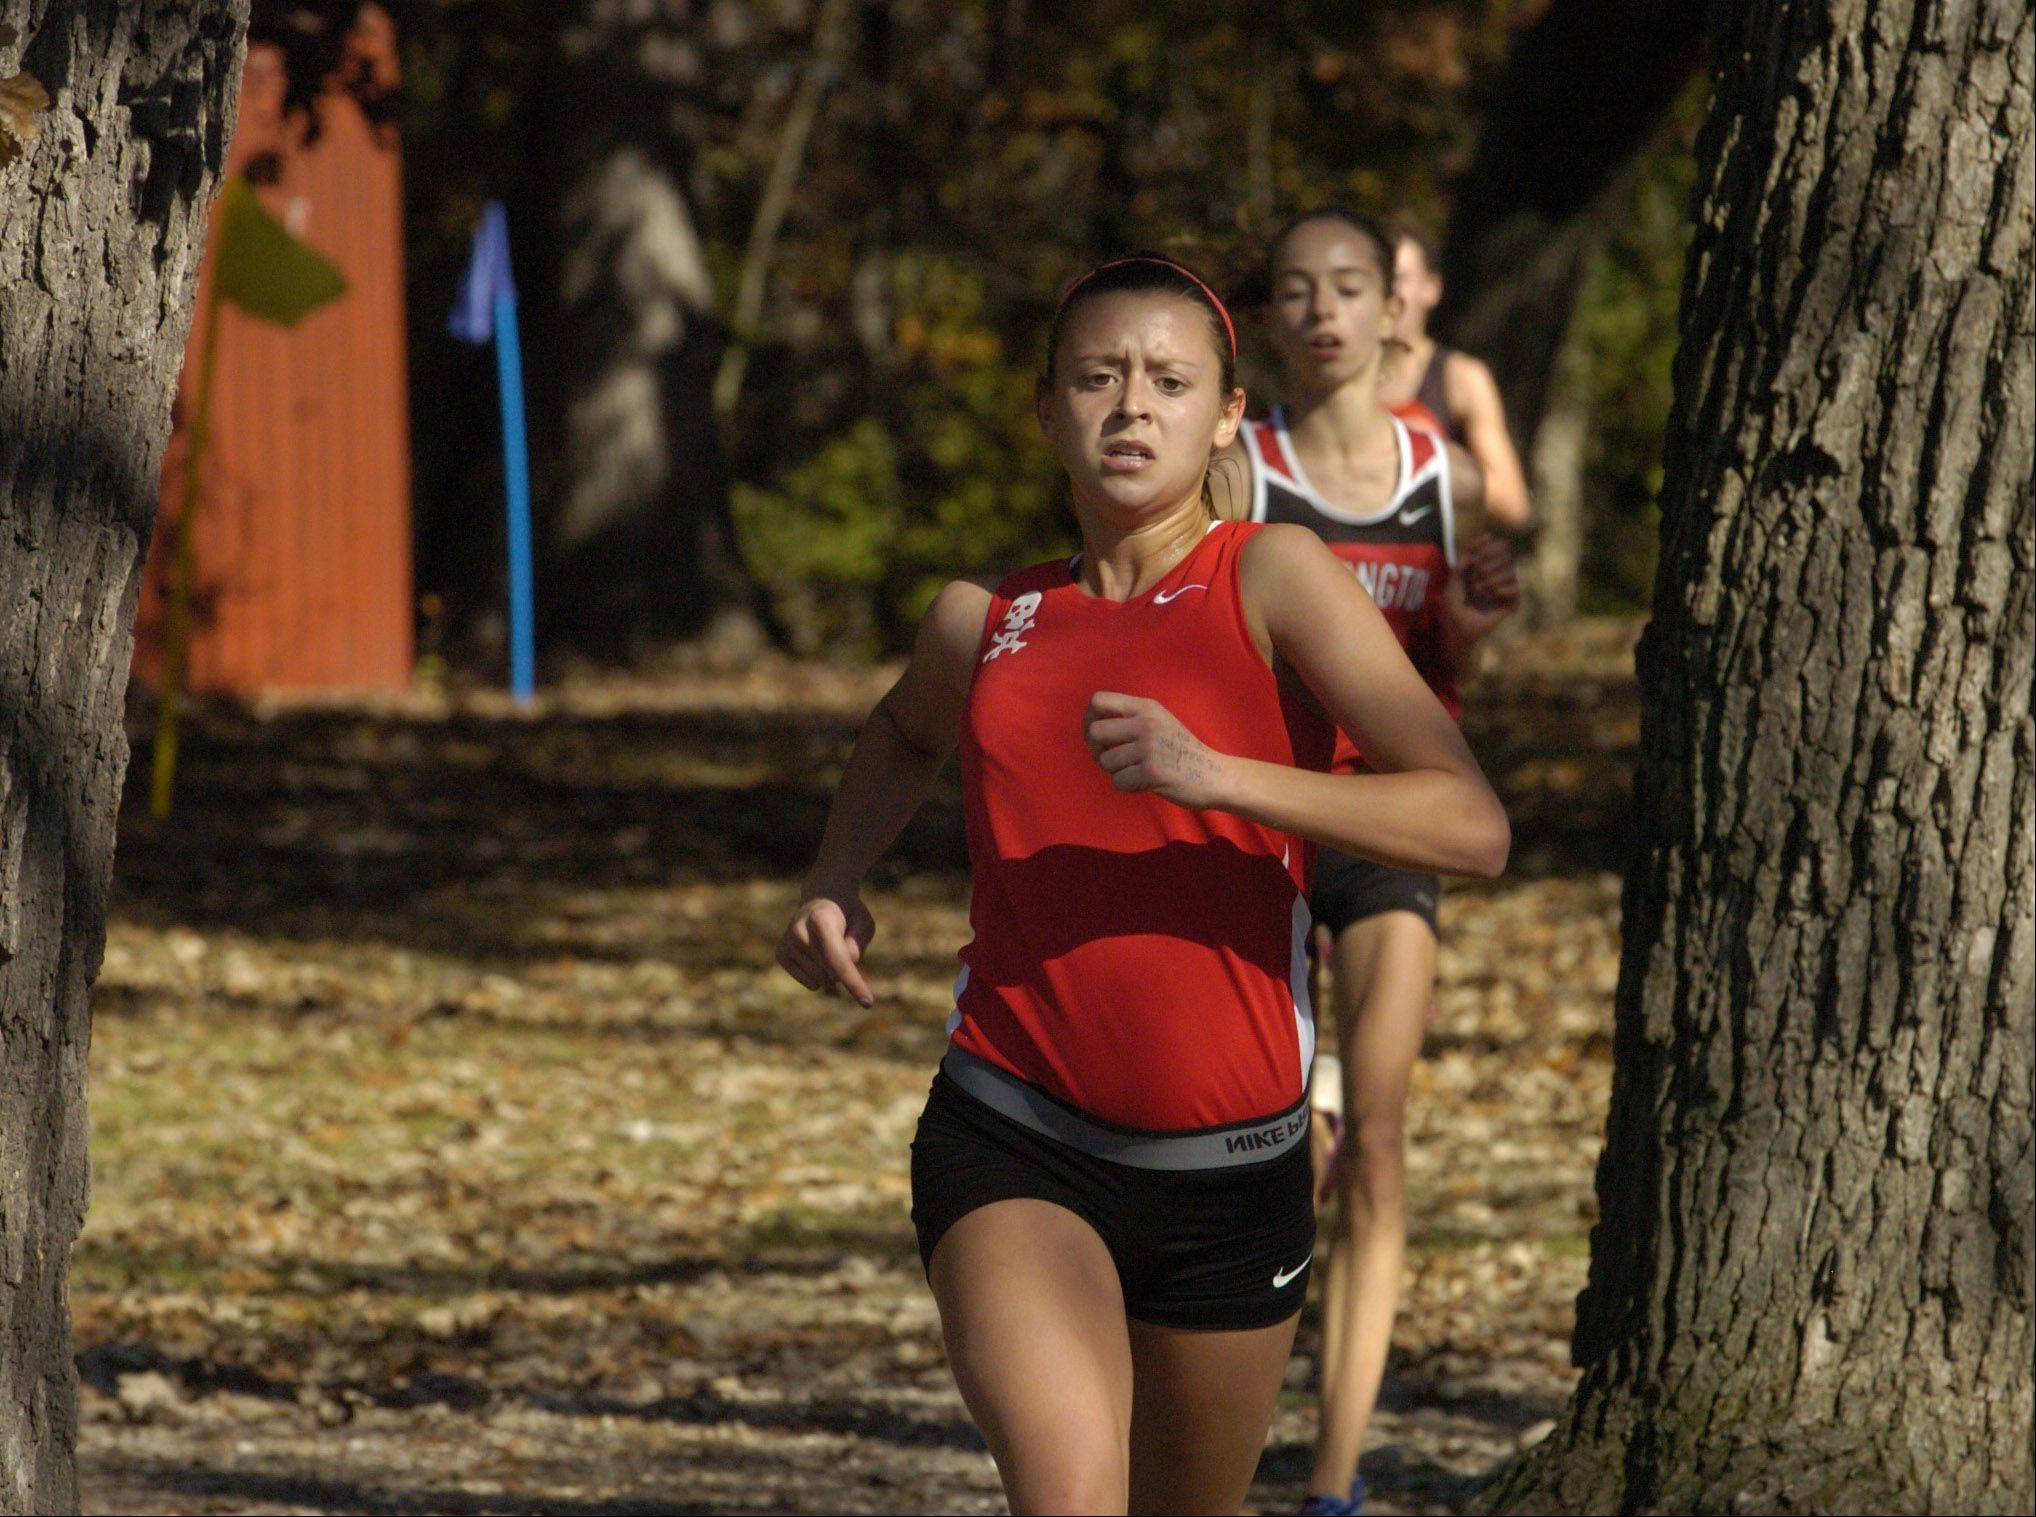 Palatine's Tess Wasowicz leads Barrington's Lauren Conroy through the woods during Class 3A Grant cross country regional. Wasowicz and Conroy finished 1-2.